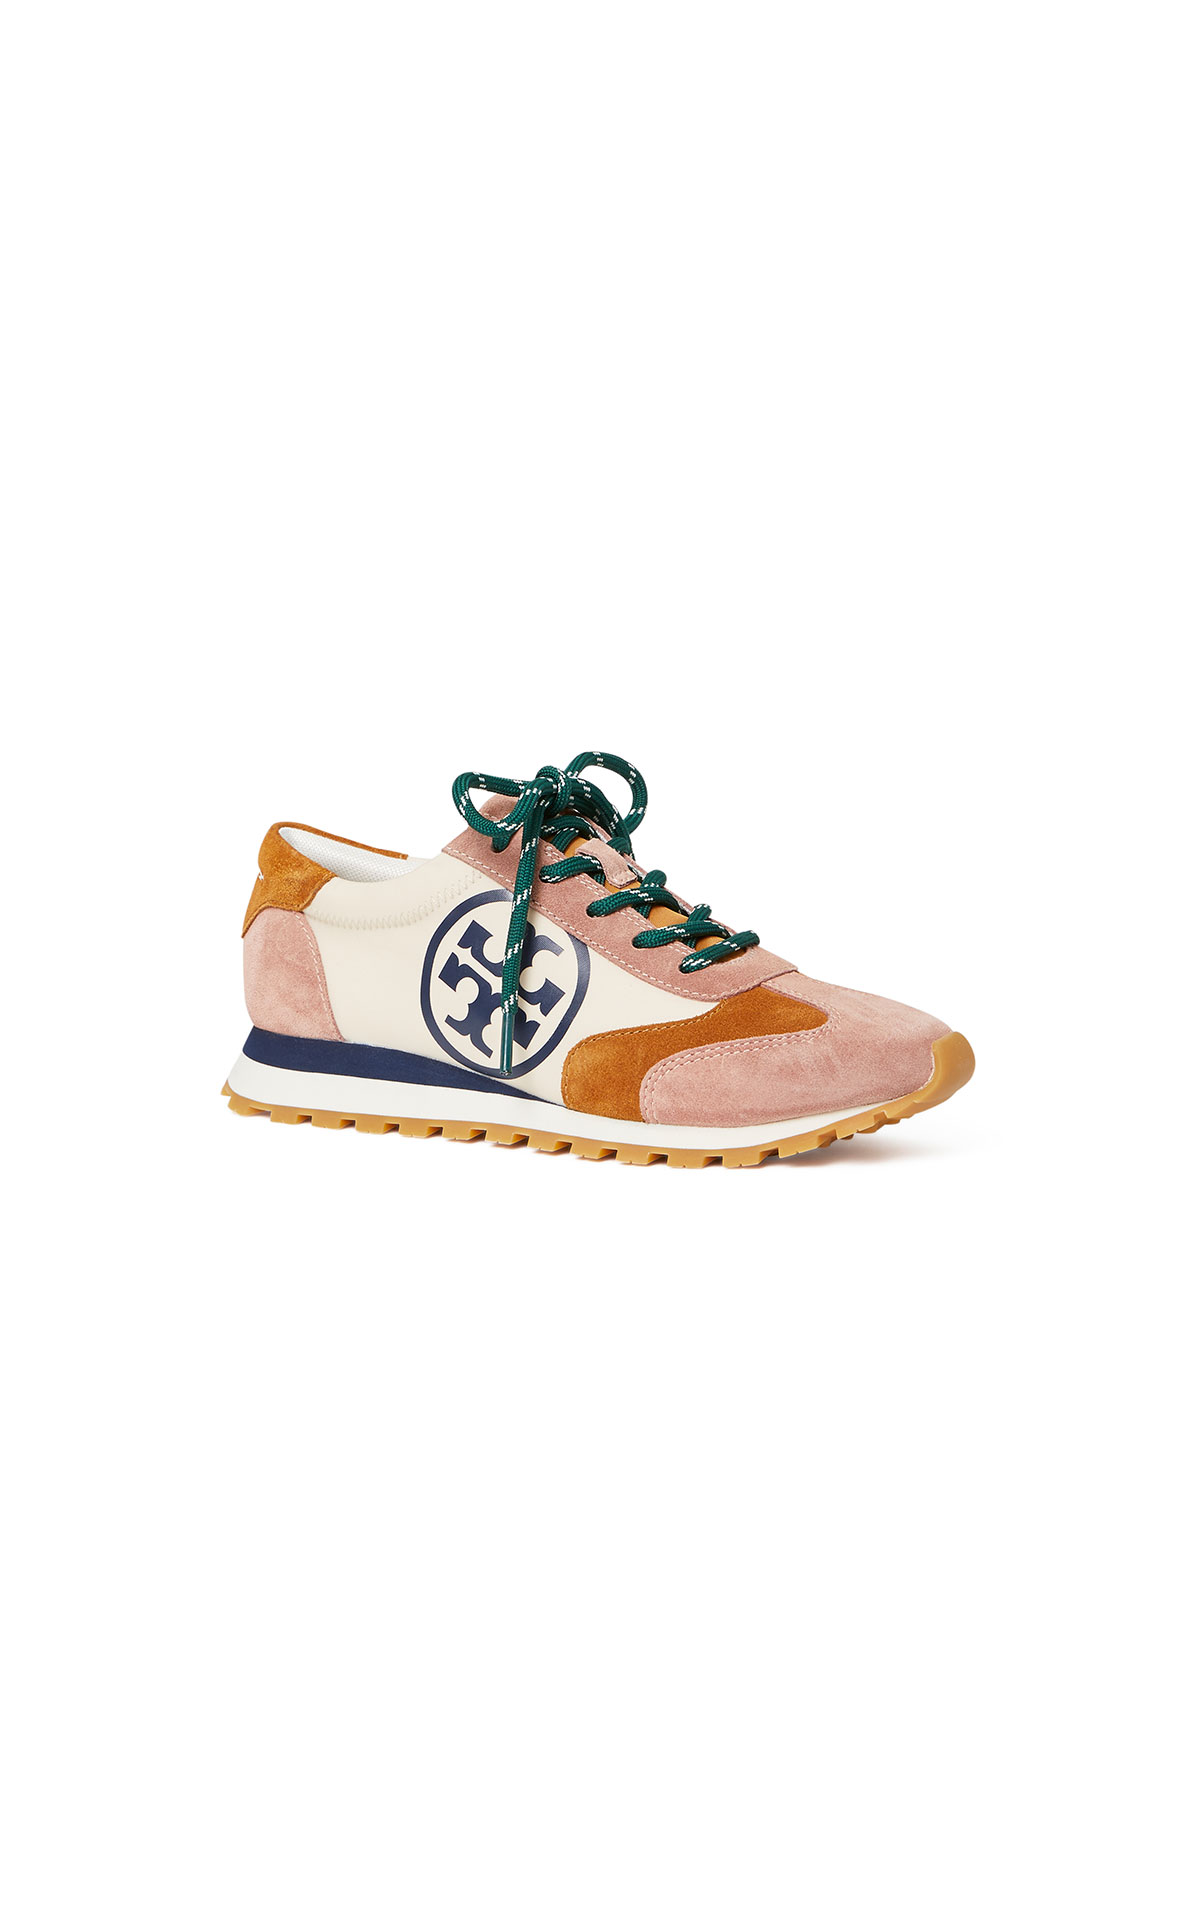 Tory Burch Annie Sneaker at The Bicester Village Shopping Collection